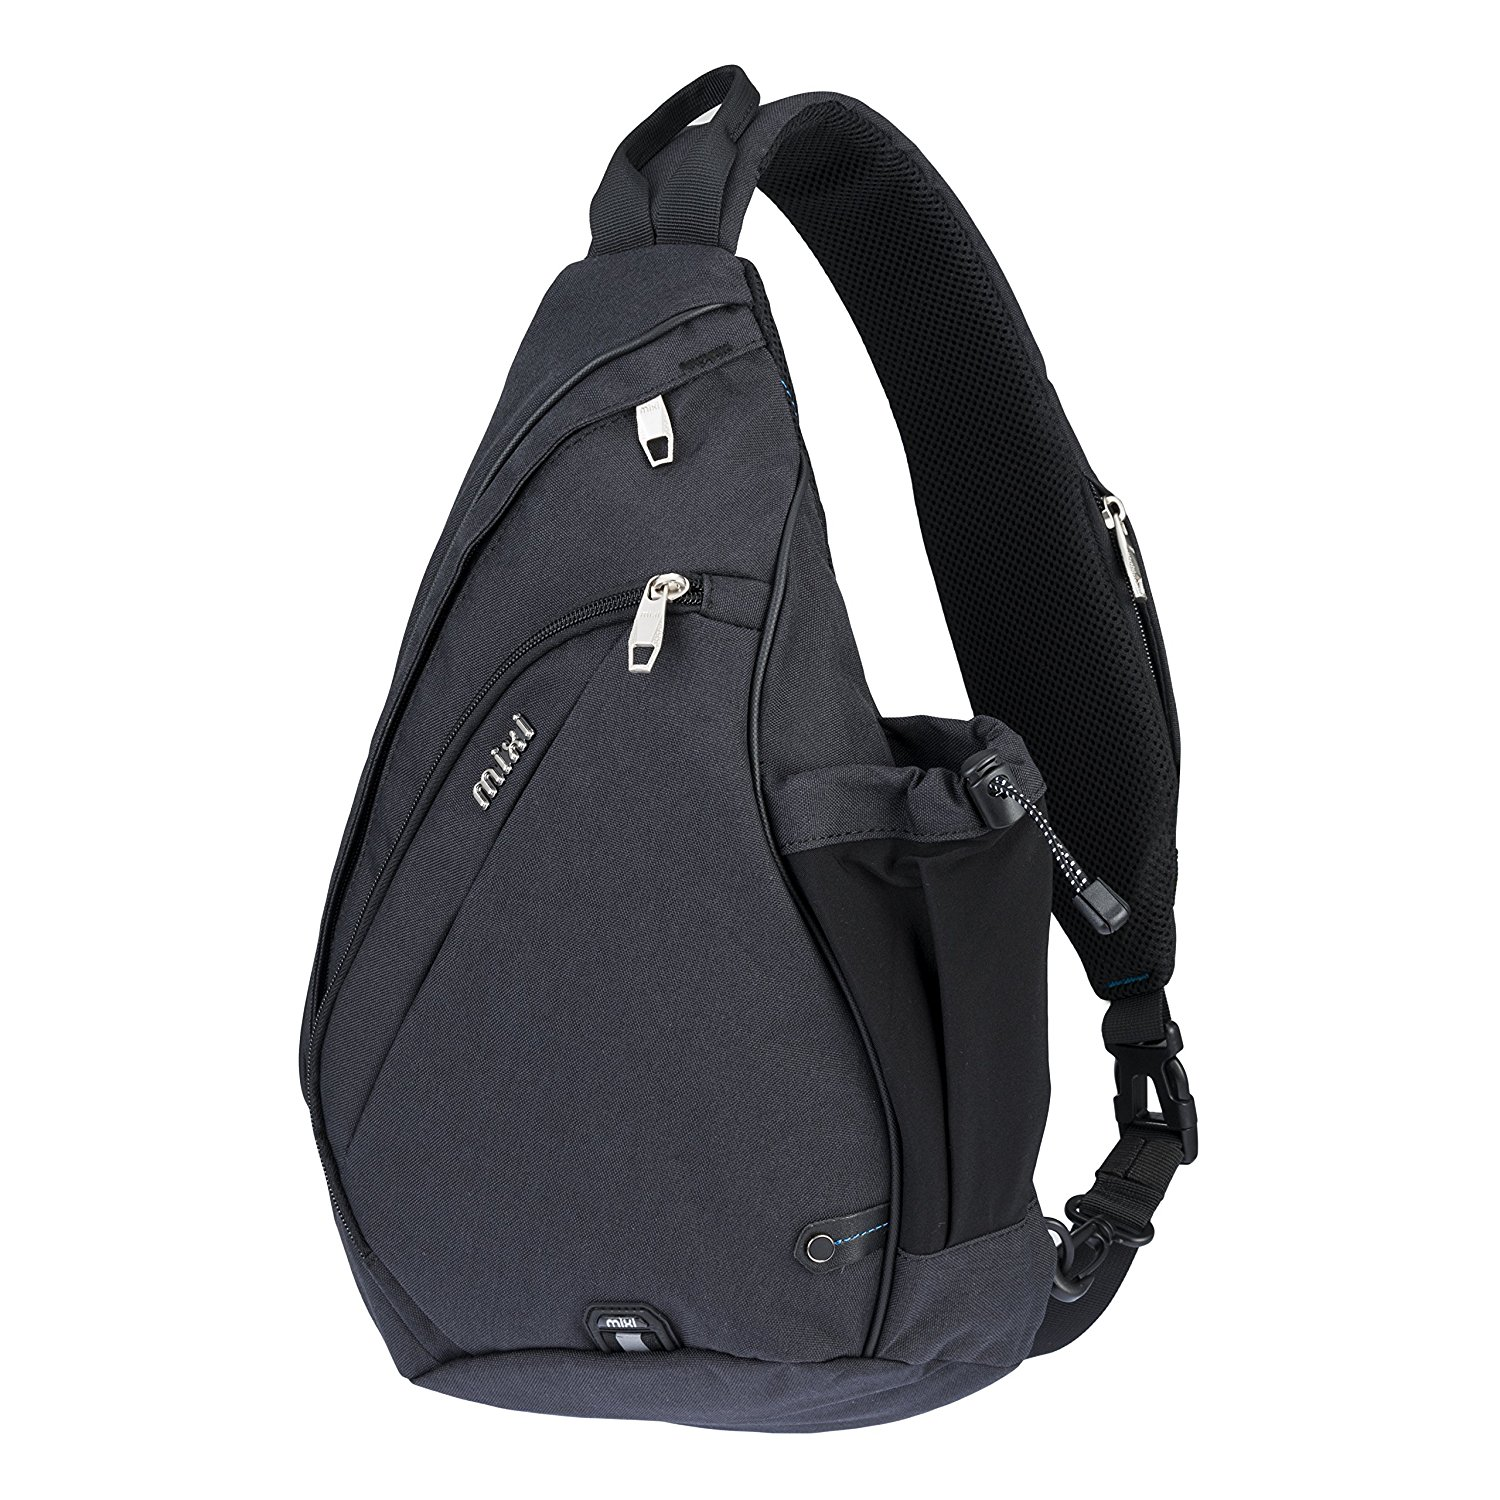 Zipper Beutel Buy Mixi Sling Bag Shoulder Backpack Crossbody Chest Bags Cycling